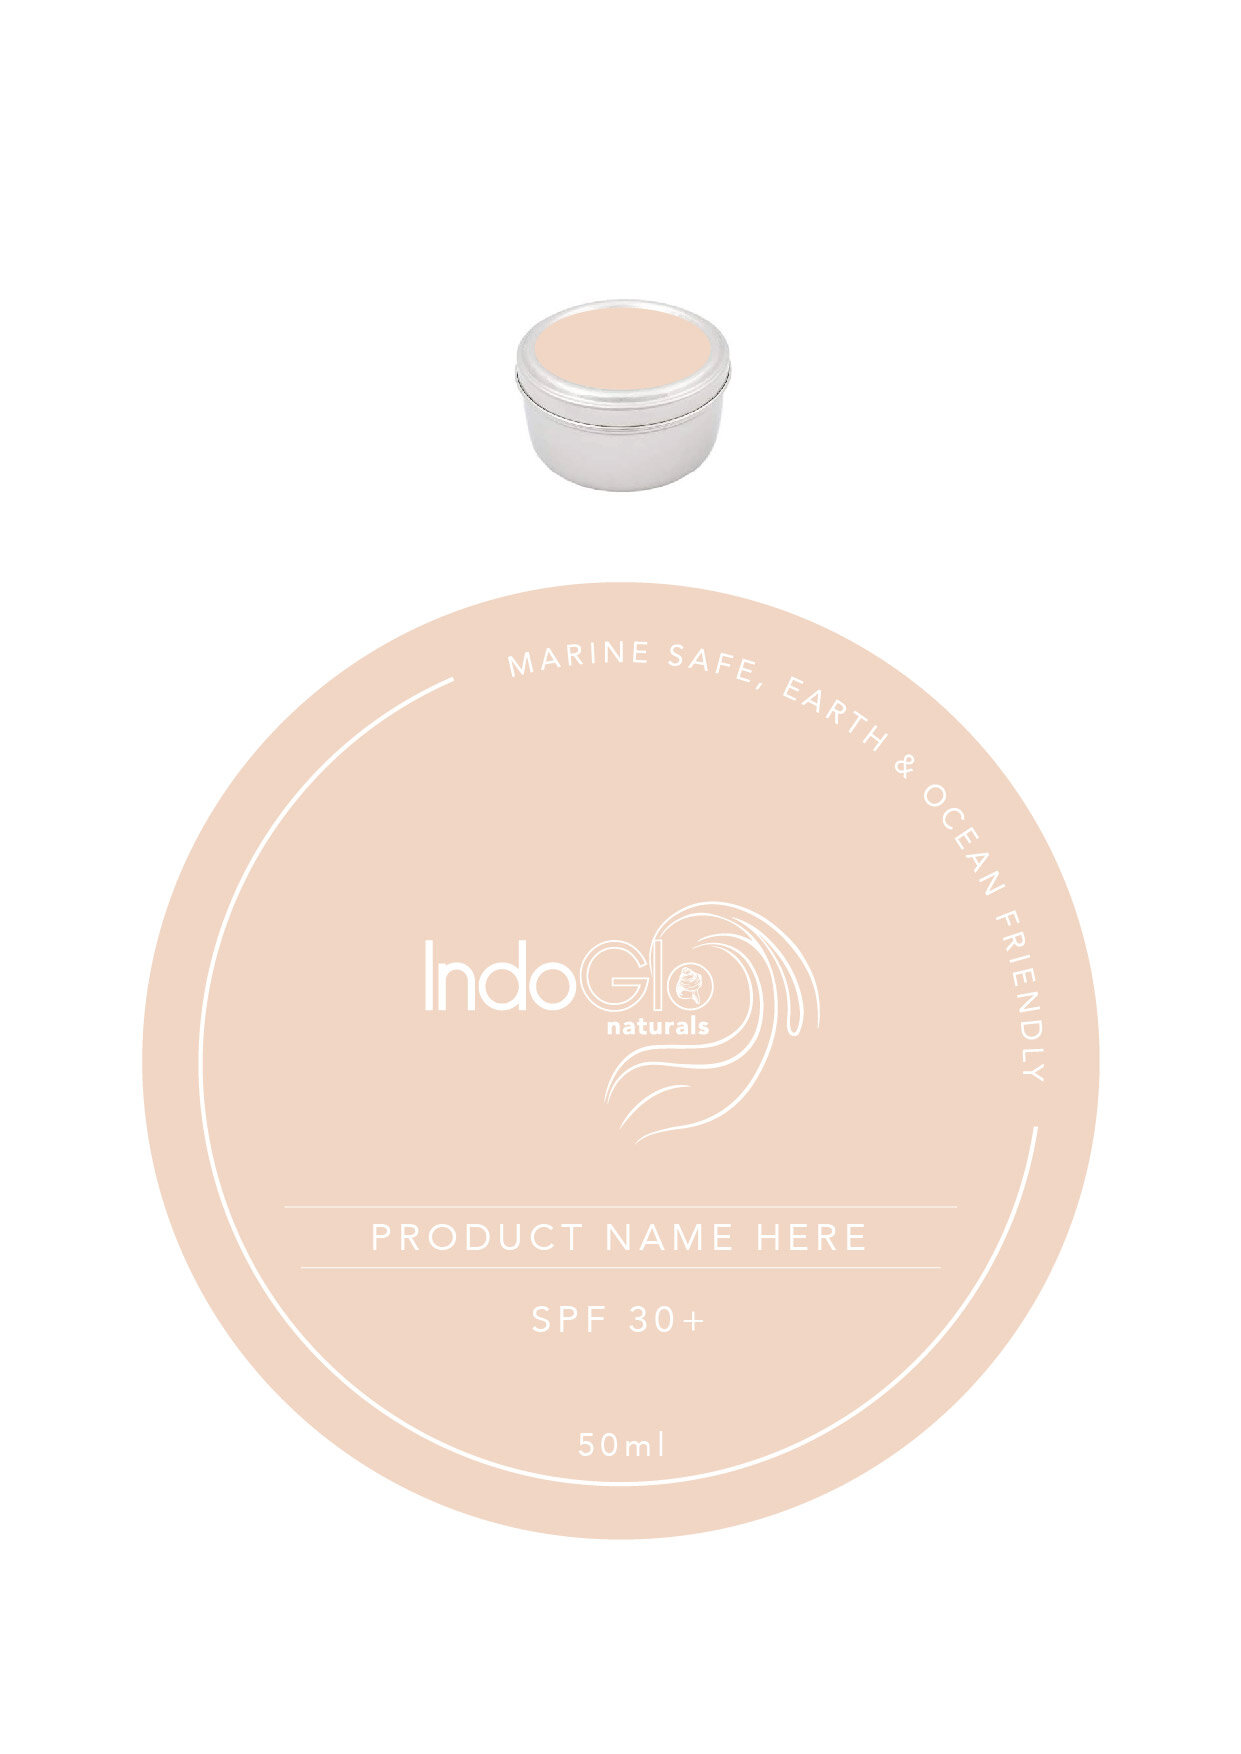 IndoGlo Logo v8_Colour 2.jpg